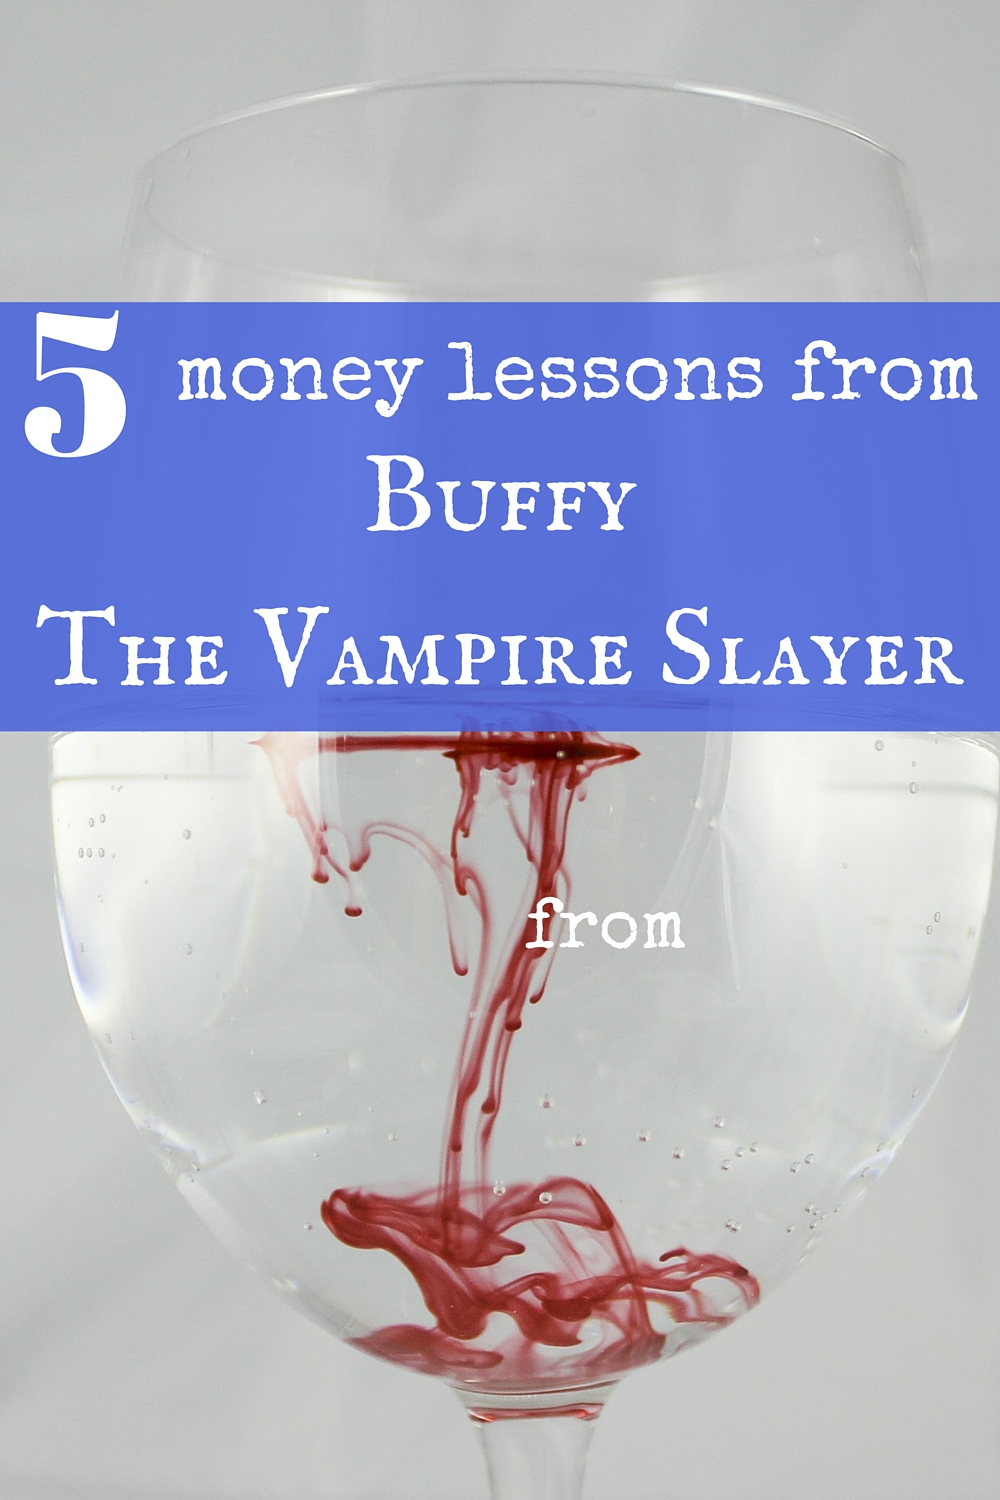 Personal finance lessons from Buffy. Never thought of these before!